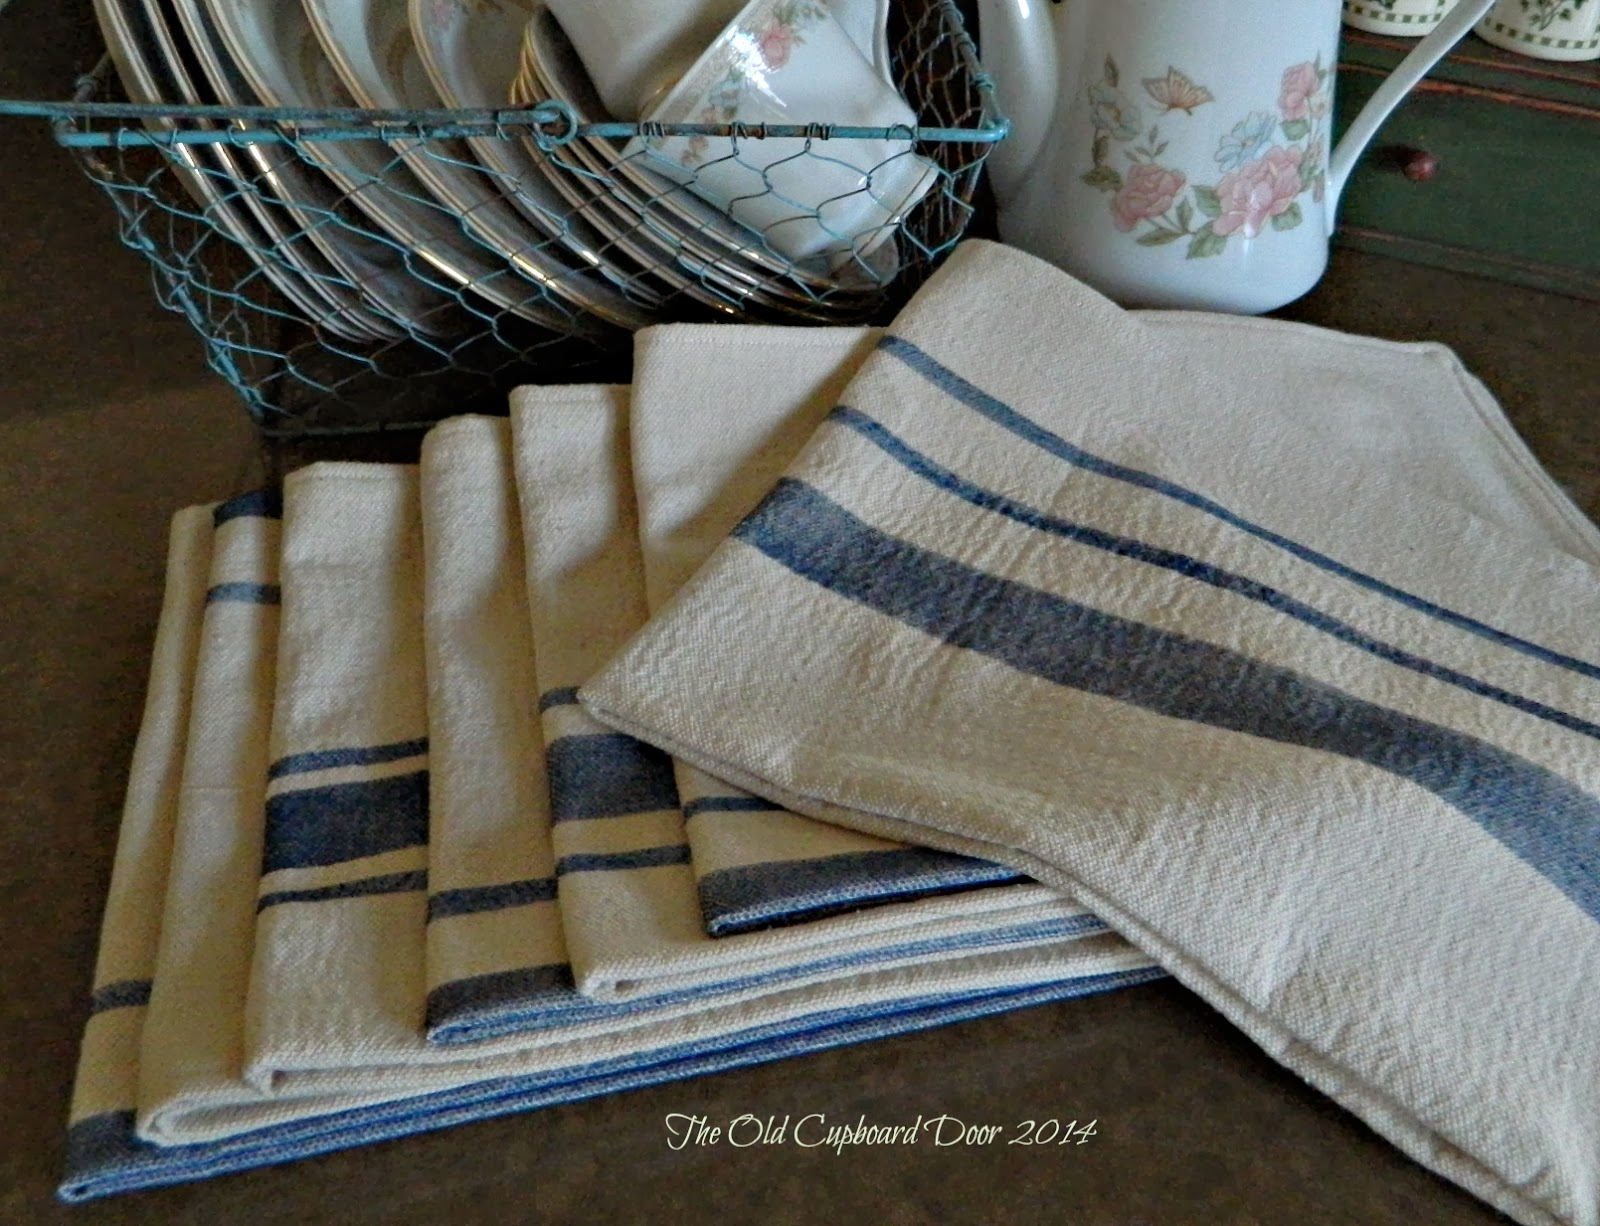 The Old Cupboard Door: Grain Sack Tea Towels